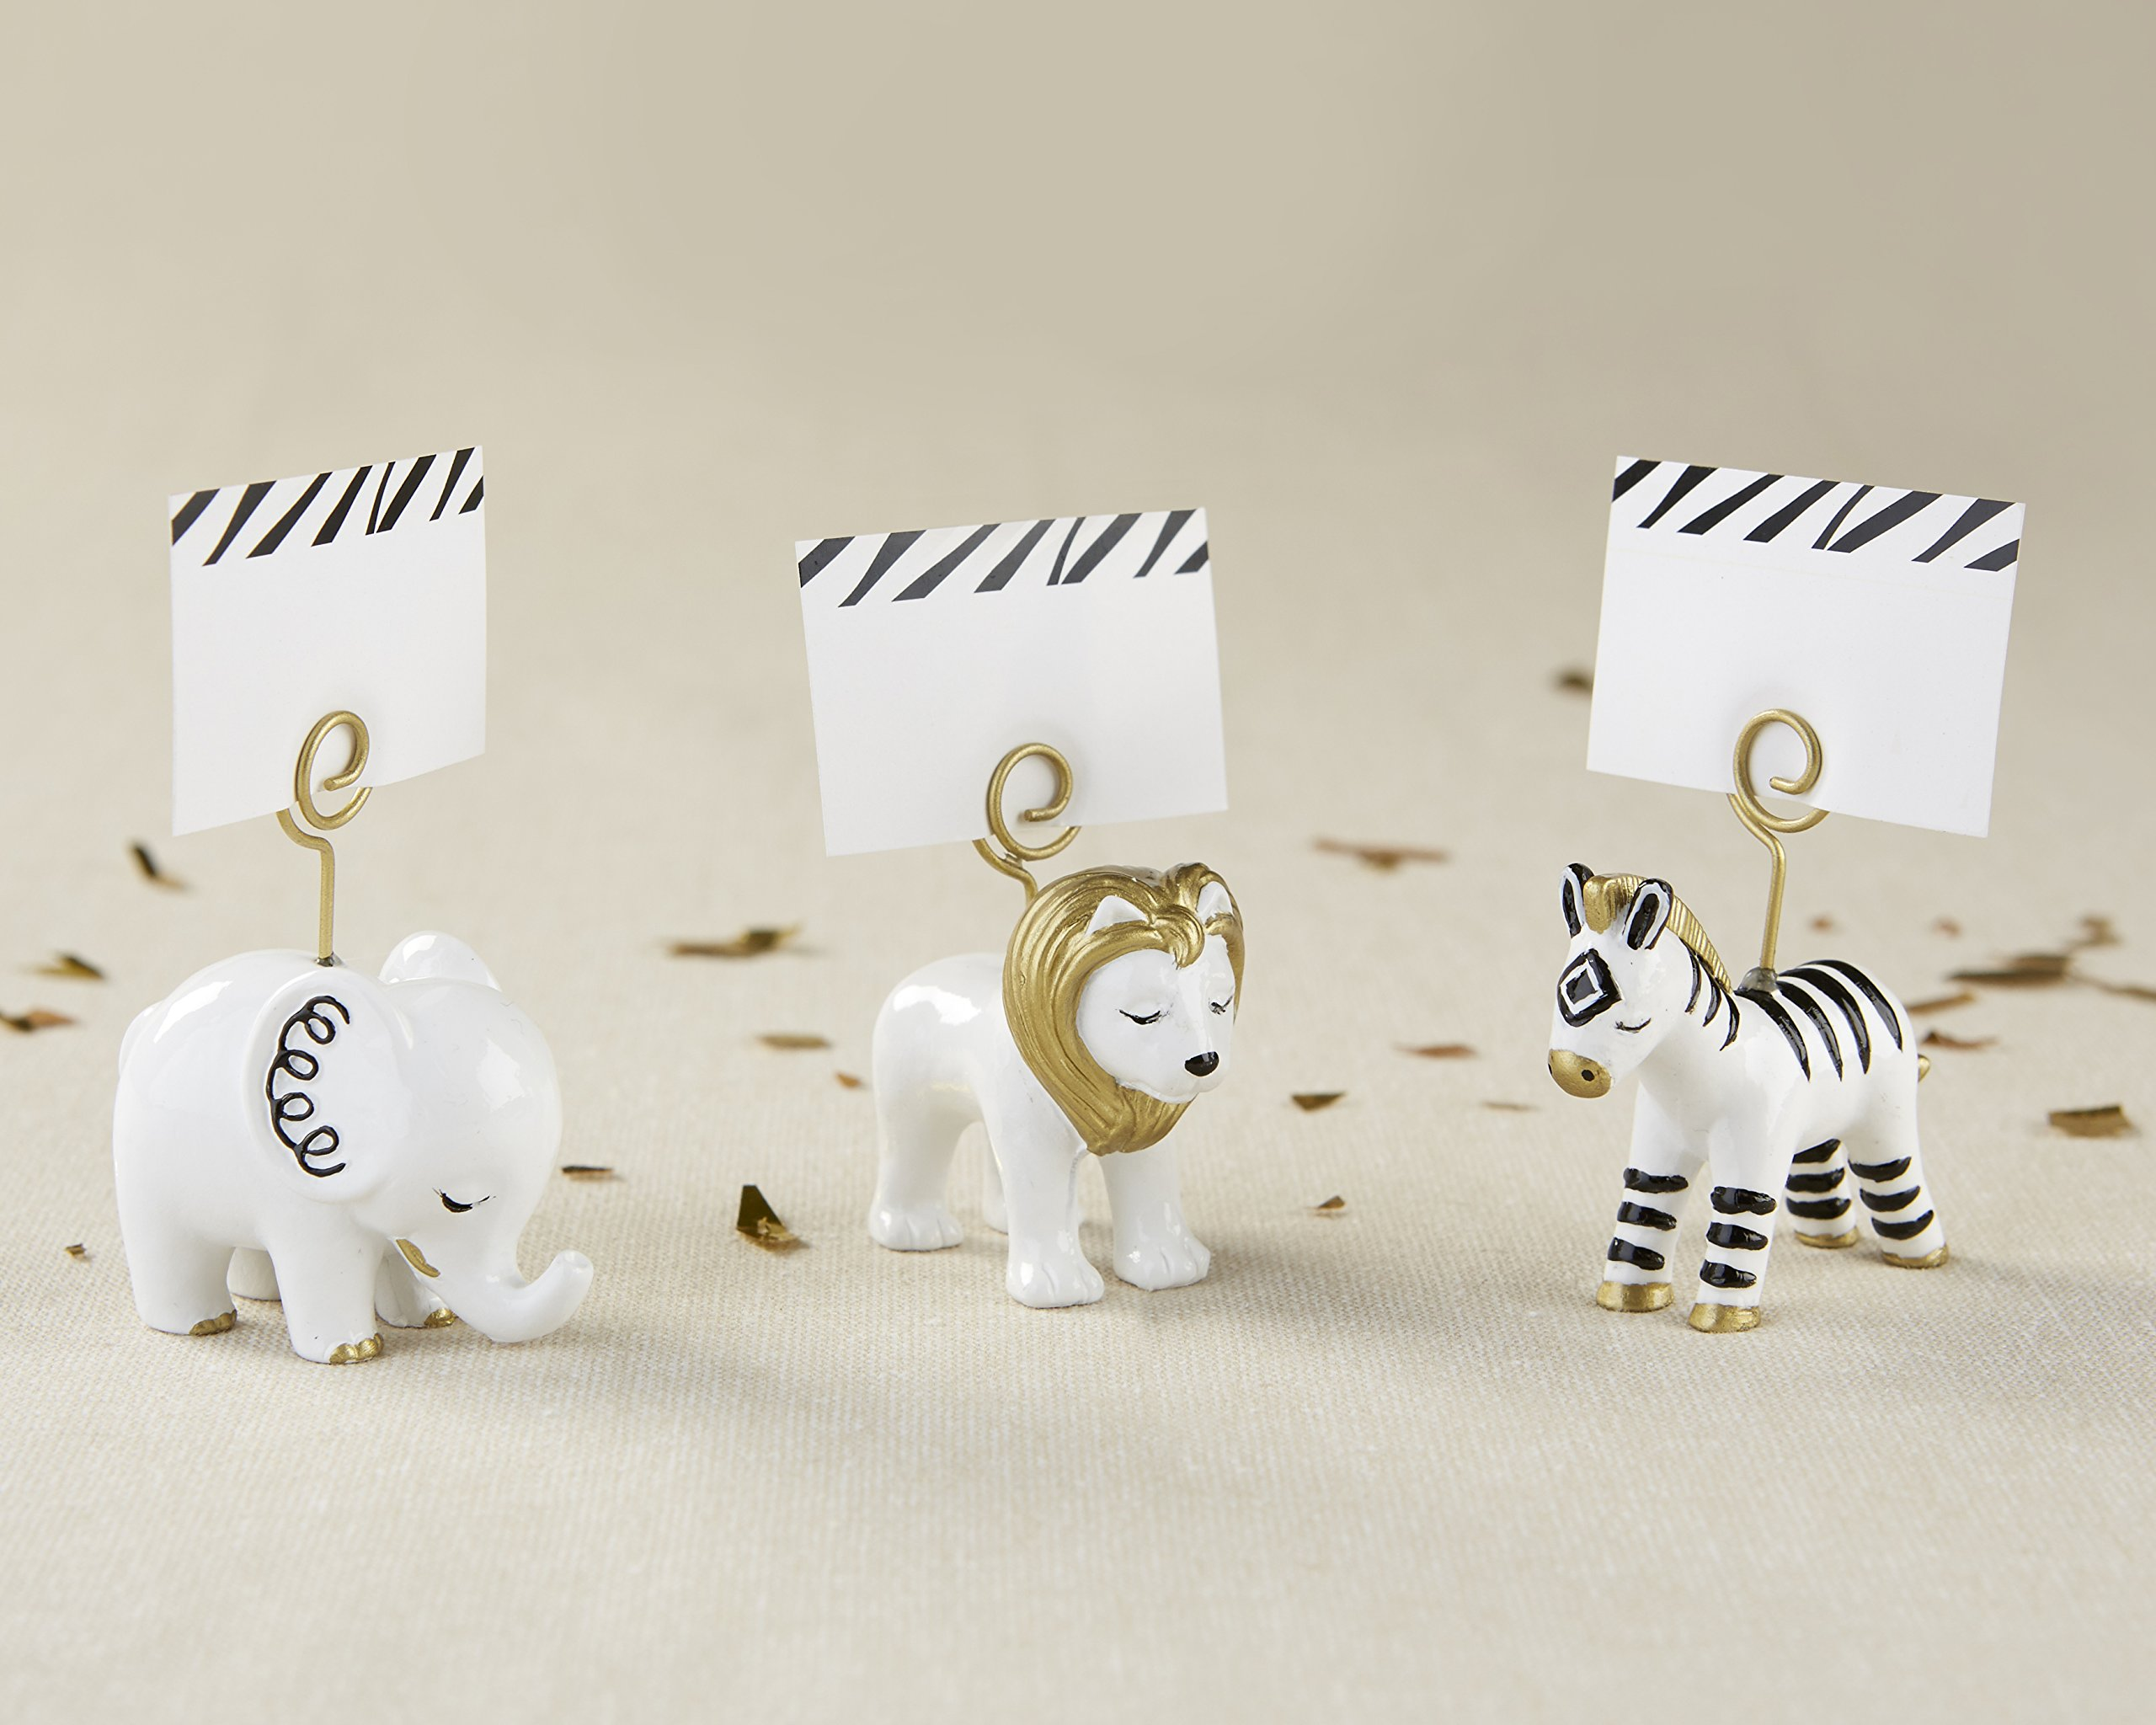 48 Safari Place Card Holders by Kate Aspen (Image #3)